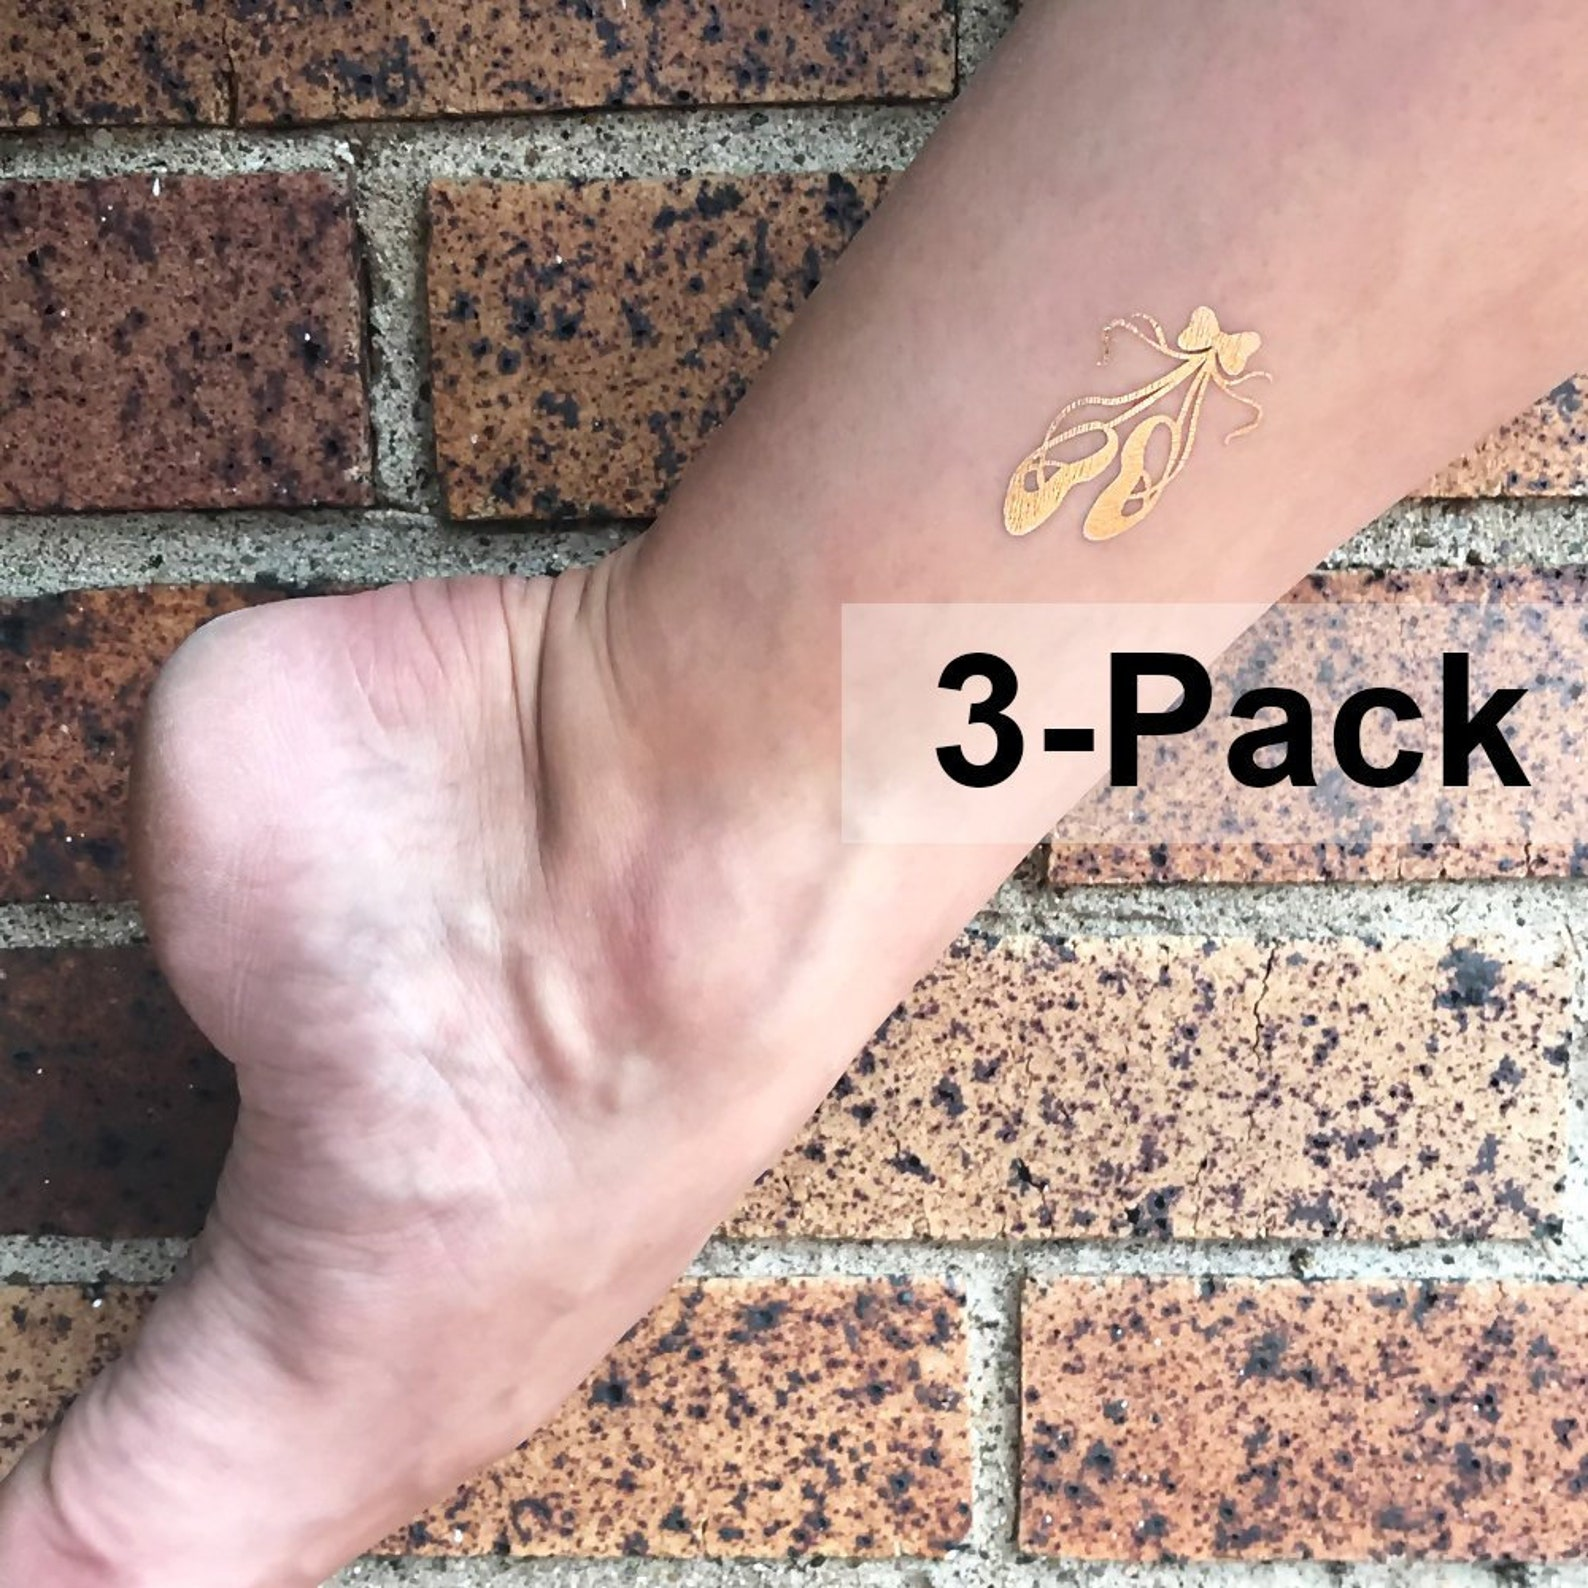 ballet shoes tattoo, gold dance tattoos, cute dancing ballerina shoes, golden jewelry tattoos, temporary transferable tats, body